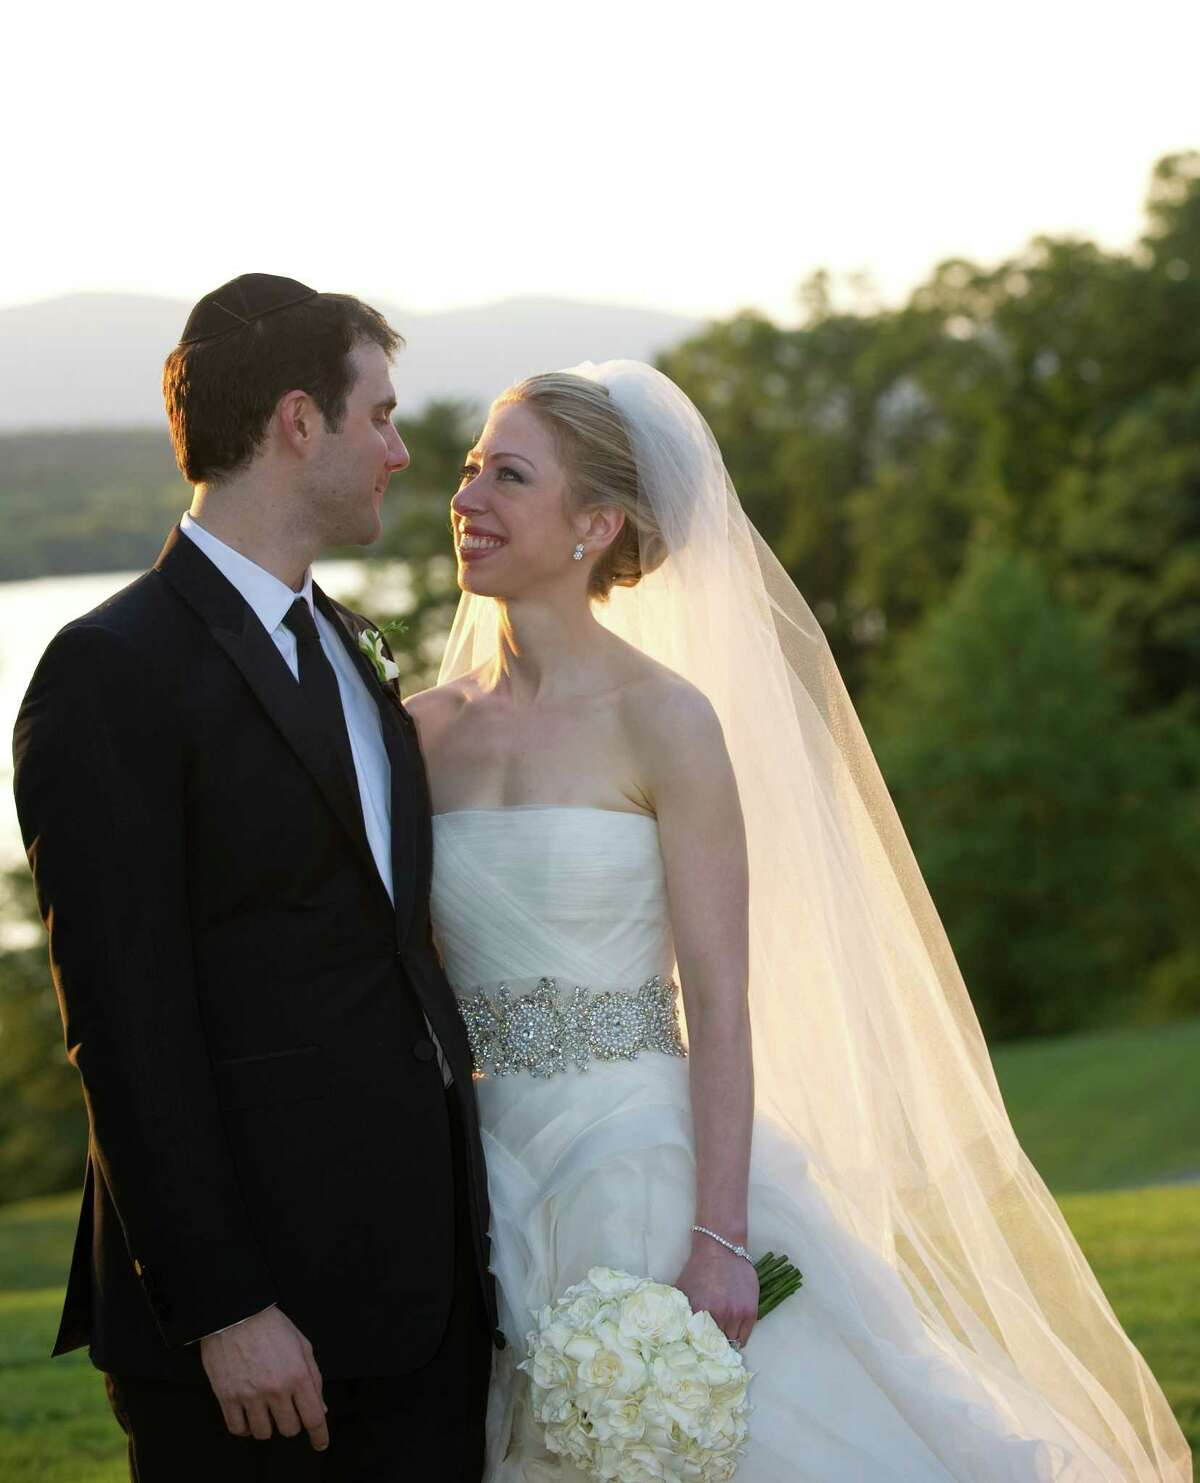 FILE - SEPTEMBER 26: Chelsea Clinton and husband Marc Mezvinsky welcomed daughter, Charlotte Clinton Mezvinsky. RHINEBECK, NY - JULY 31: In this handout image provided by Barbara Kinney, Marc Mezvinsky (L) and Chelsea Clinton pose during their wedding at the Astor Courts Estate on July 31, 2010 in Rhinebeck, New York. Chelsea Clinton, the daughter of former U.S. President Bill Clinton and Secretary of State Hillary Clinton, married Marc Mezvinsky today in an interfaith ceremony at the estate built by John Jacob Astor on the Hudson River about two hours north of New York City. (Photo by Barbara Kinney via Getty Images) ORG XMIT: 503816393